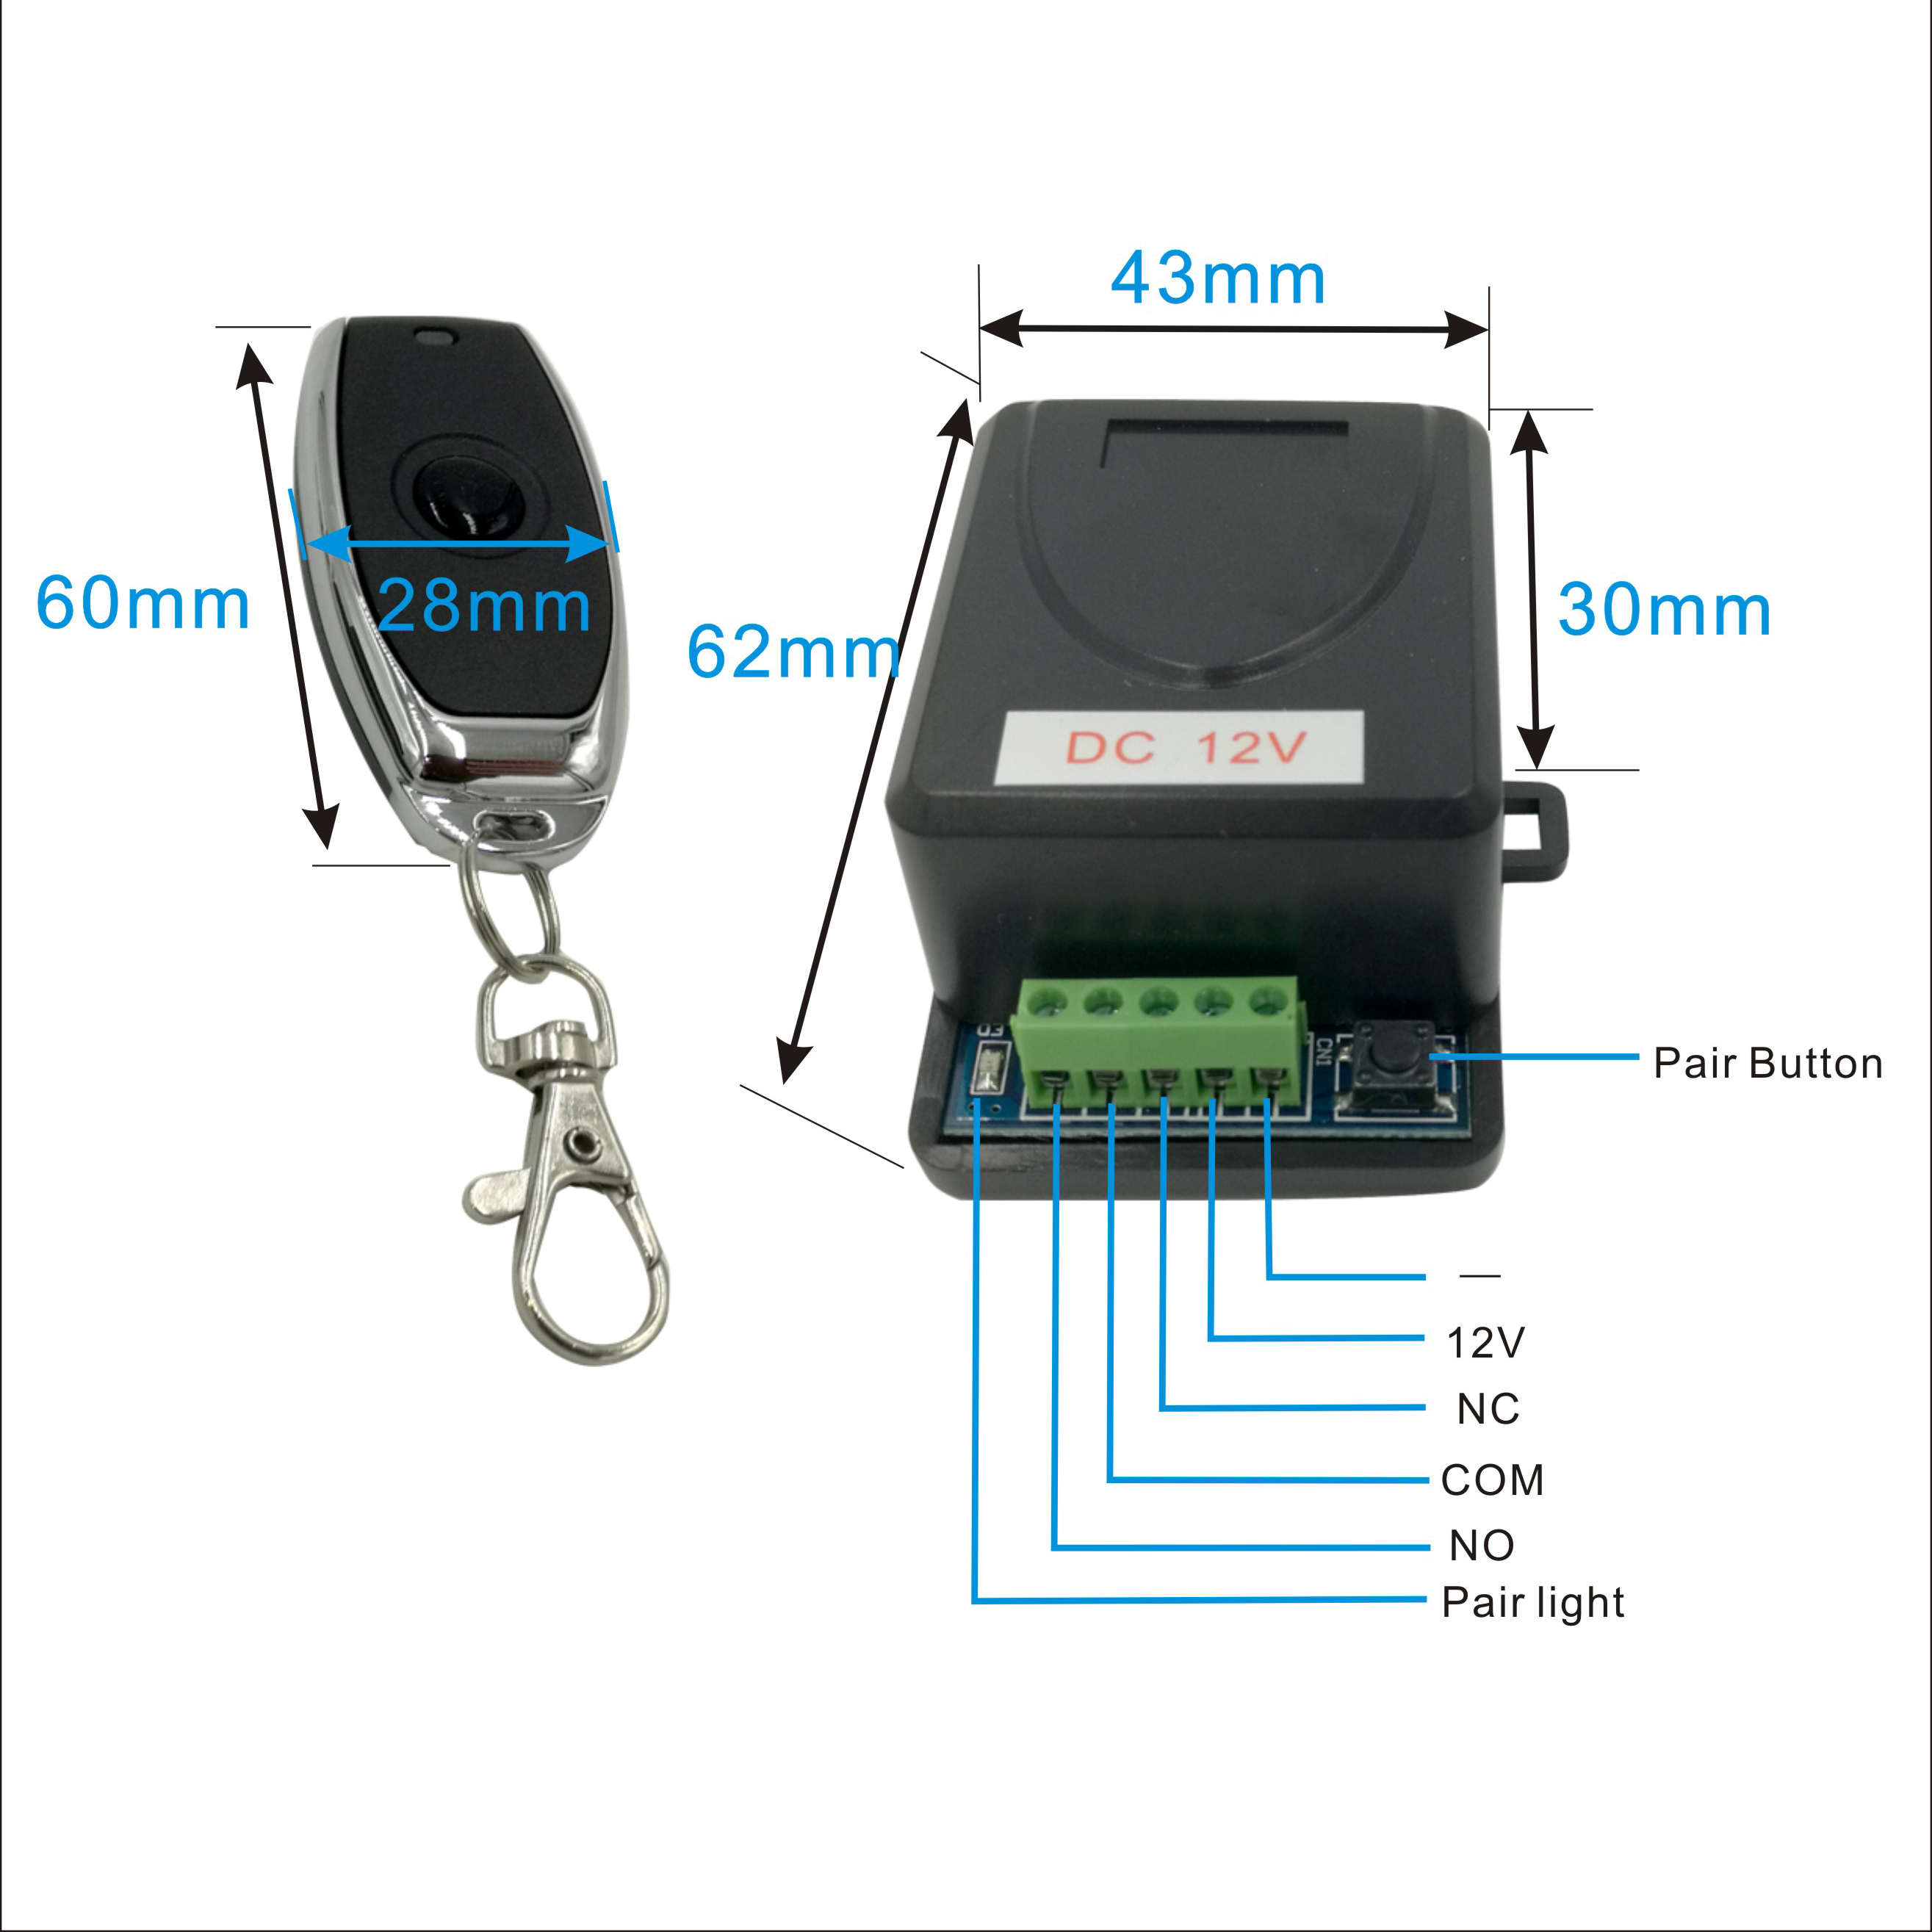 DC12V 433MHz Metal Wireless Remote Control Switch For Door Lock Access Control Remote Exit Button Of Door Key